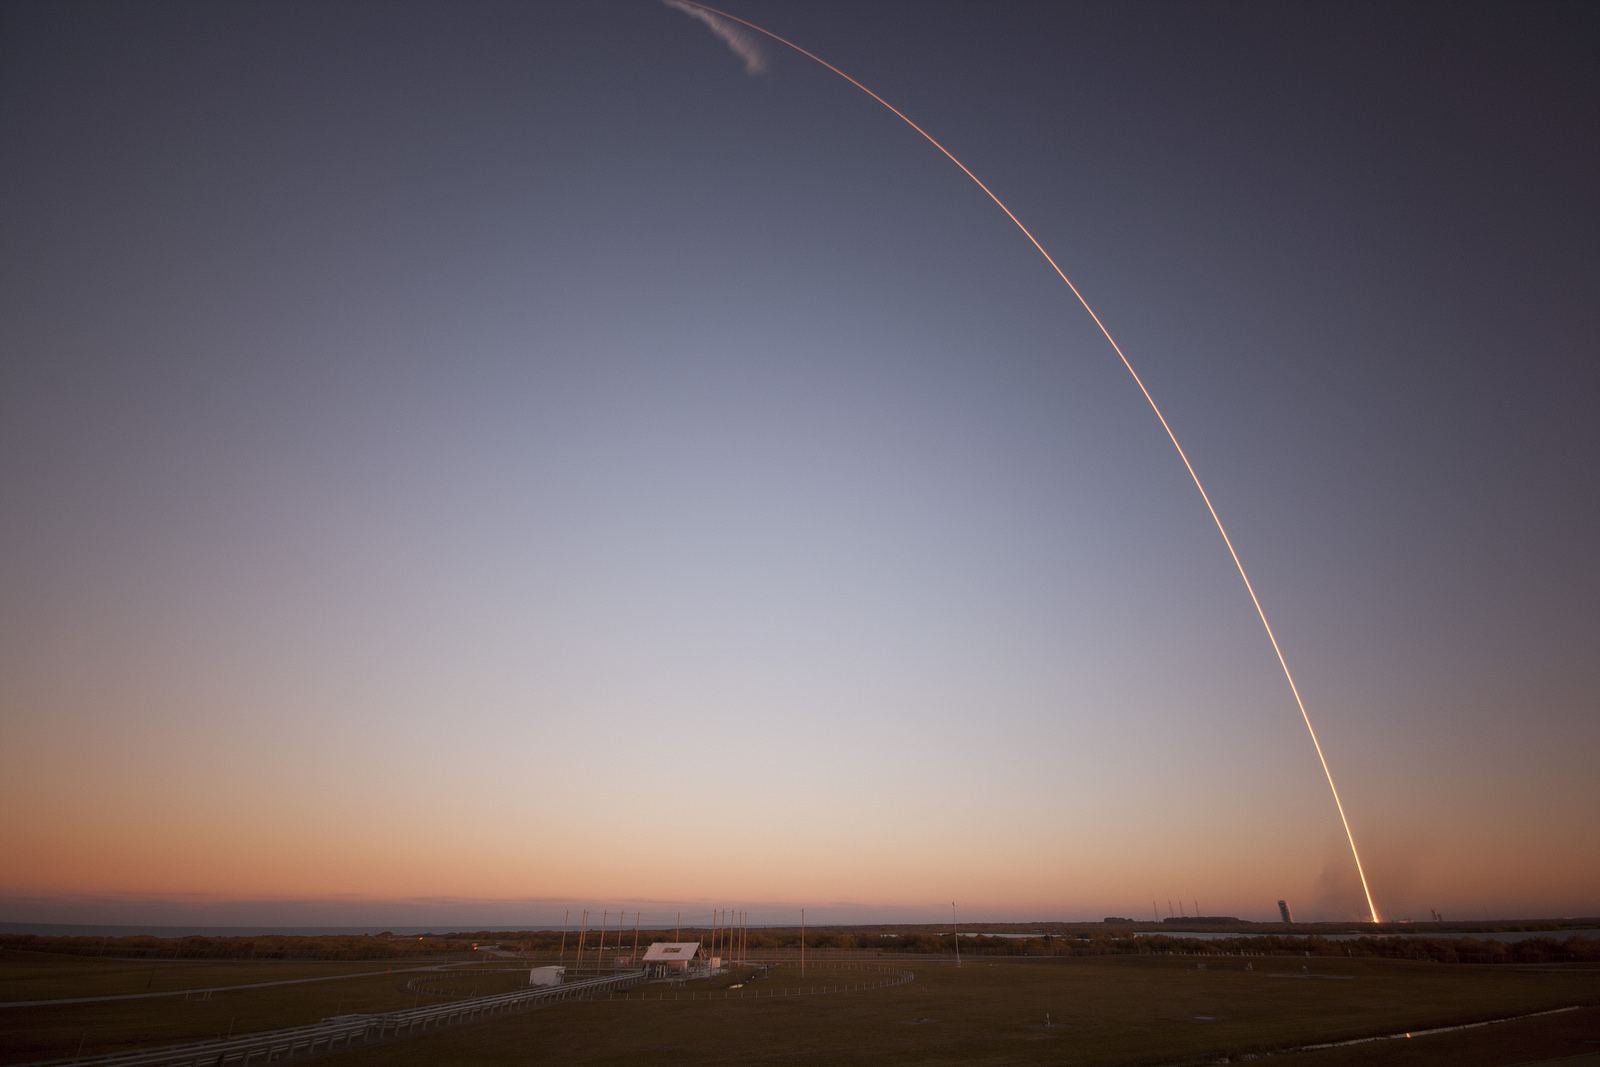 spacex7 Falcon 9 lifted off from SpaceX Launch Complex